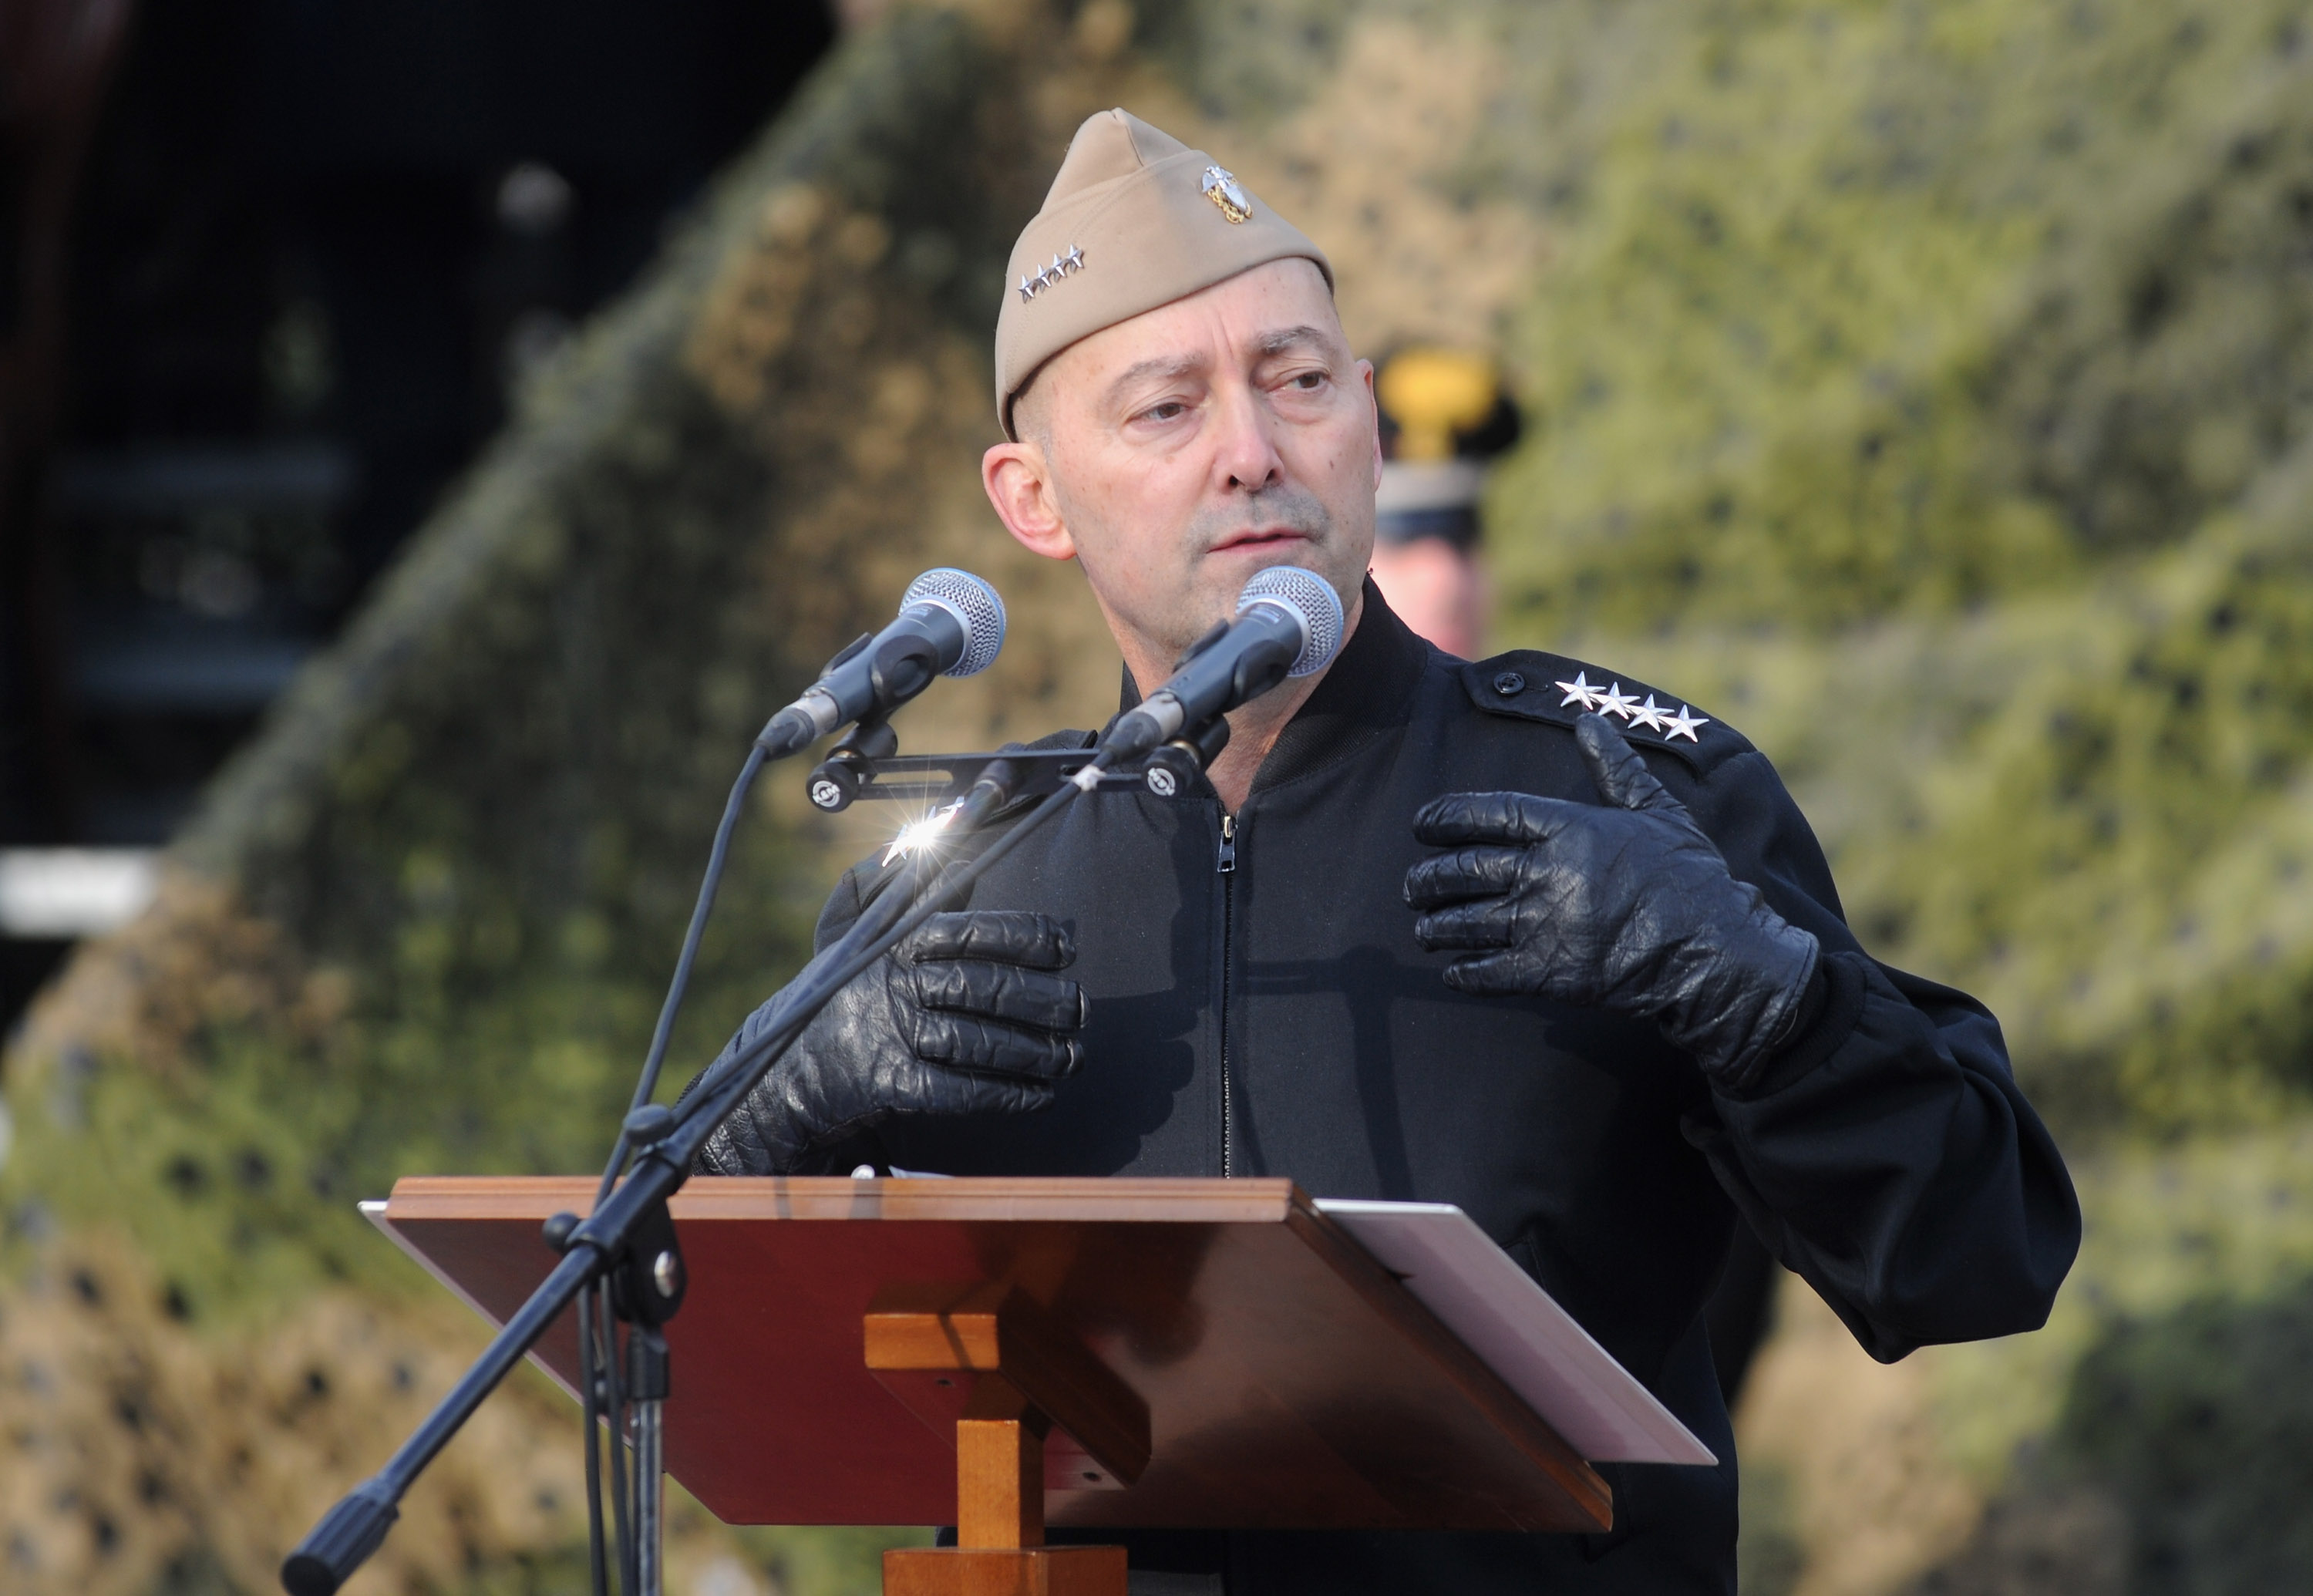 Former Supreme Allied Commander Europe Admiral James Stavridis makes a speech at the departure Ceremony for OTAN Rapid Deployable Corps - Italy bound for Afghanistan at Ugo Mara Barracks in Solbiate Olona, Italy, on Jan. 10, 2013.